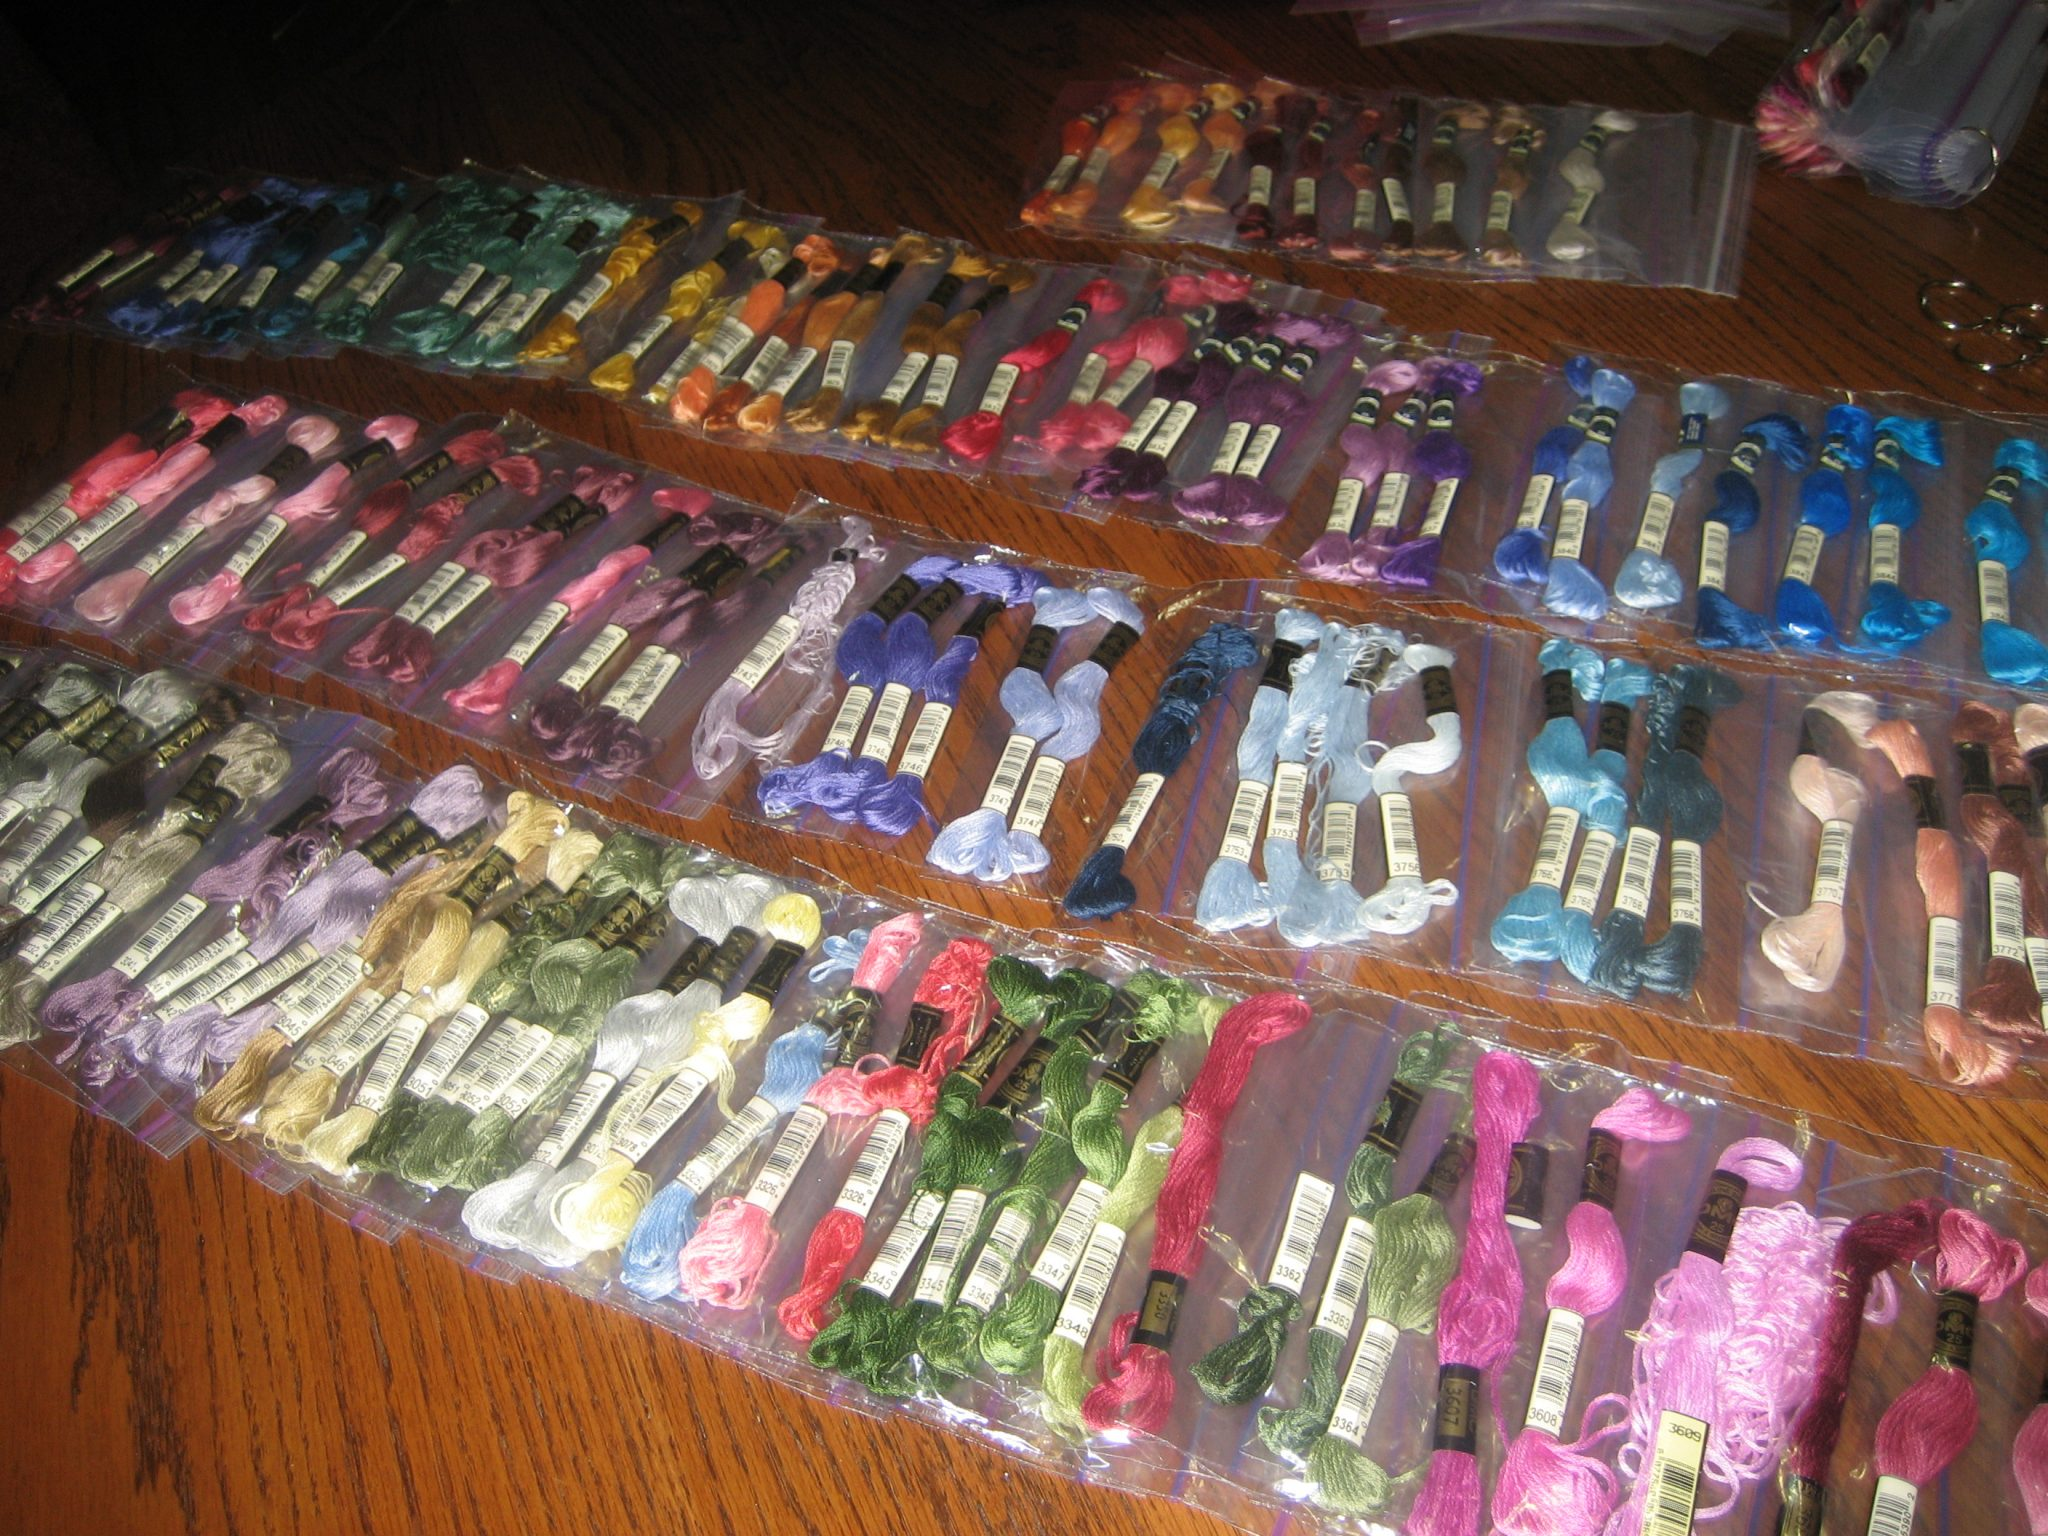 A Jones For Organizing Embroidery Floss Storage And Organization